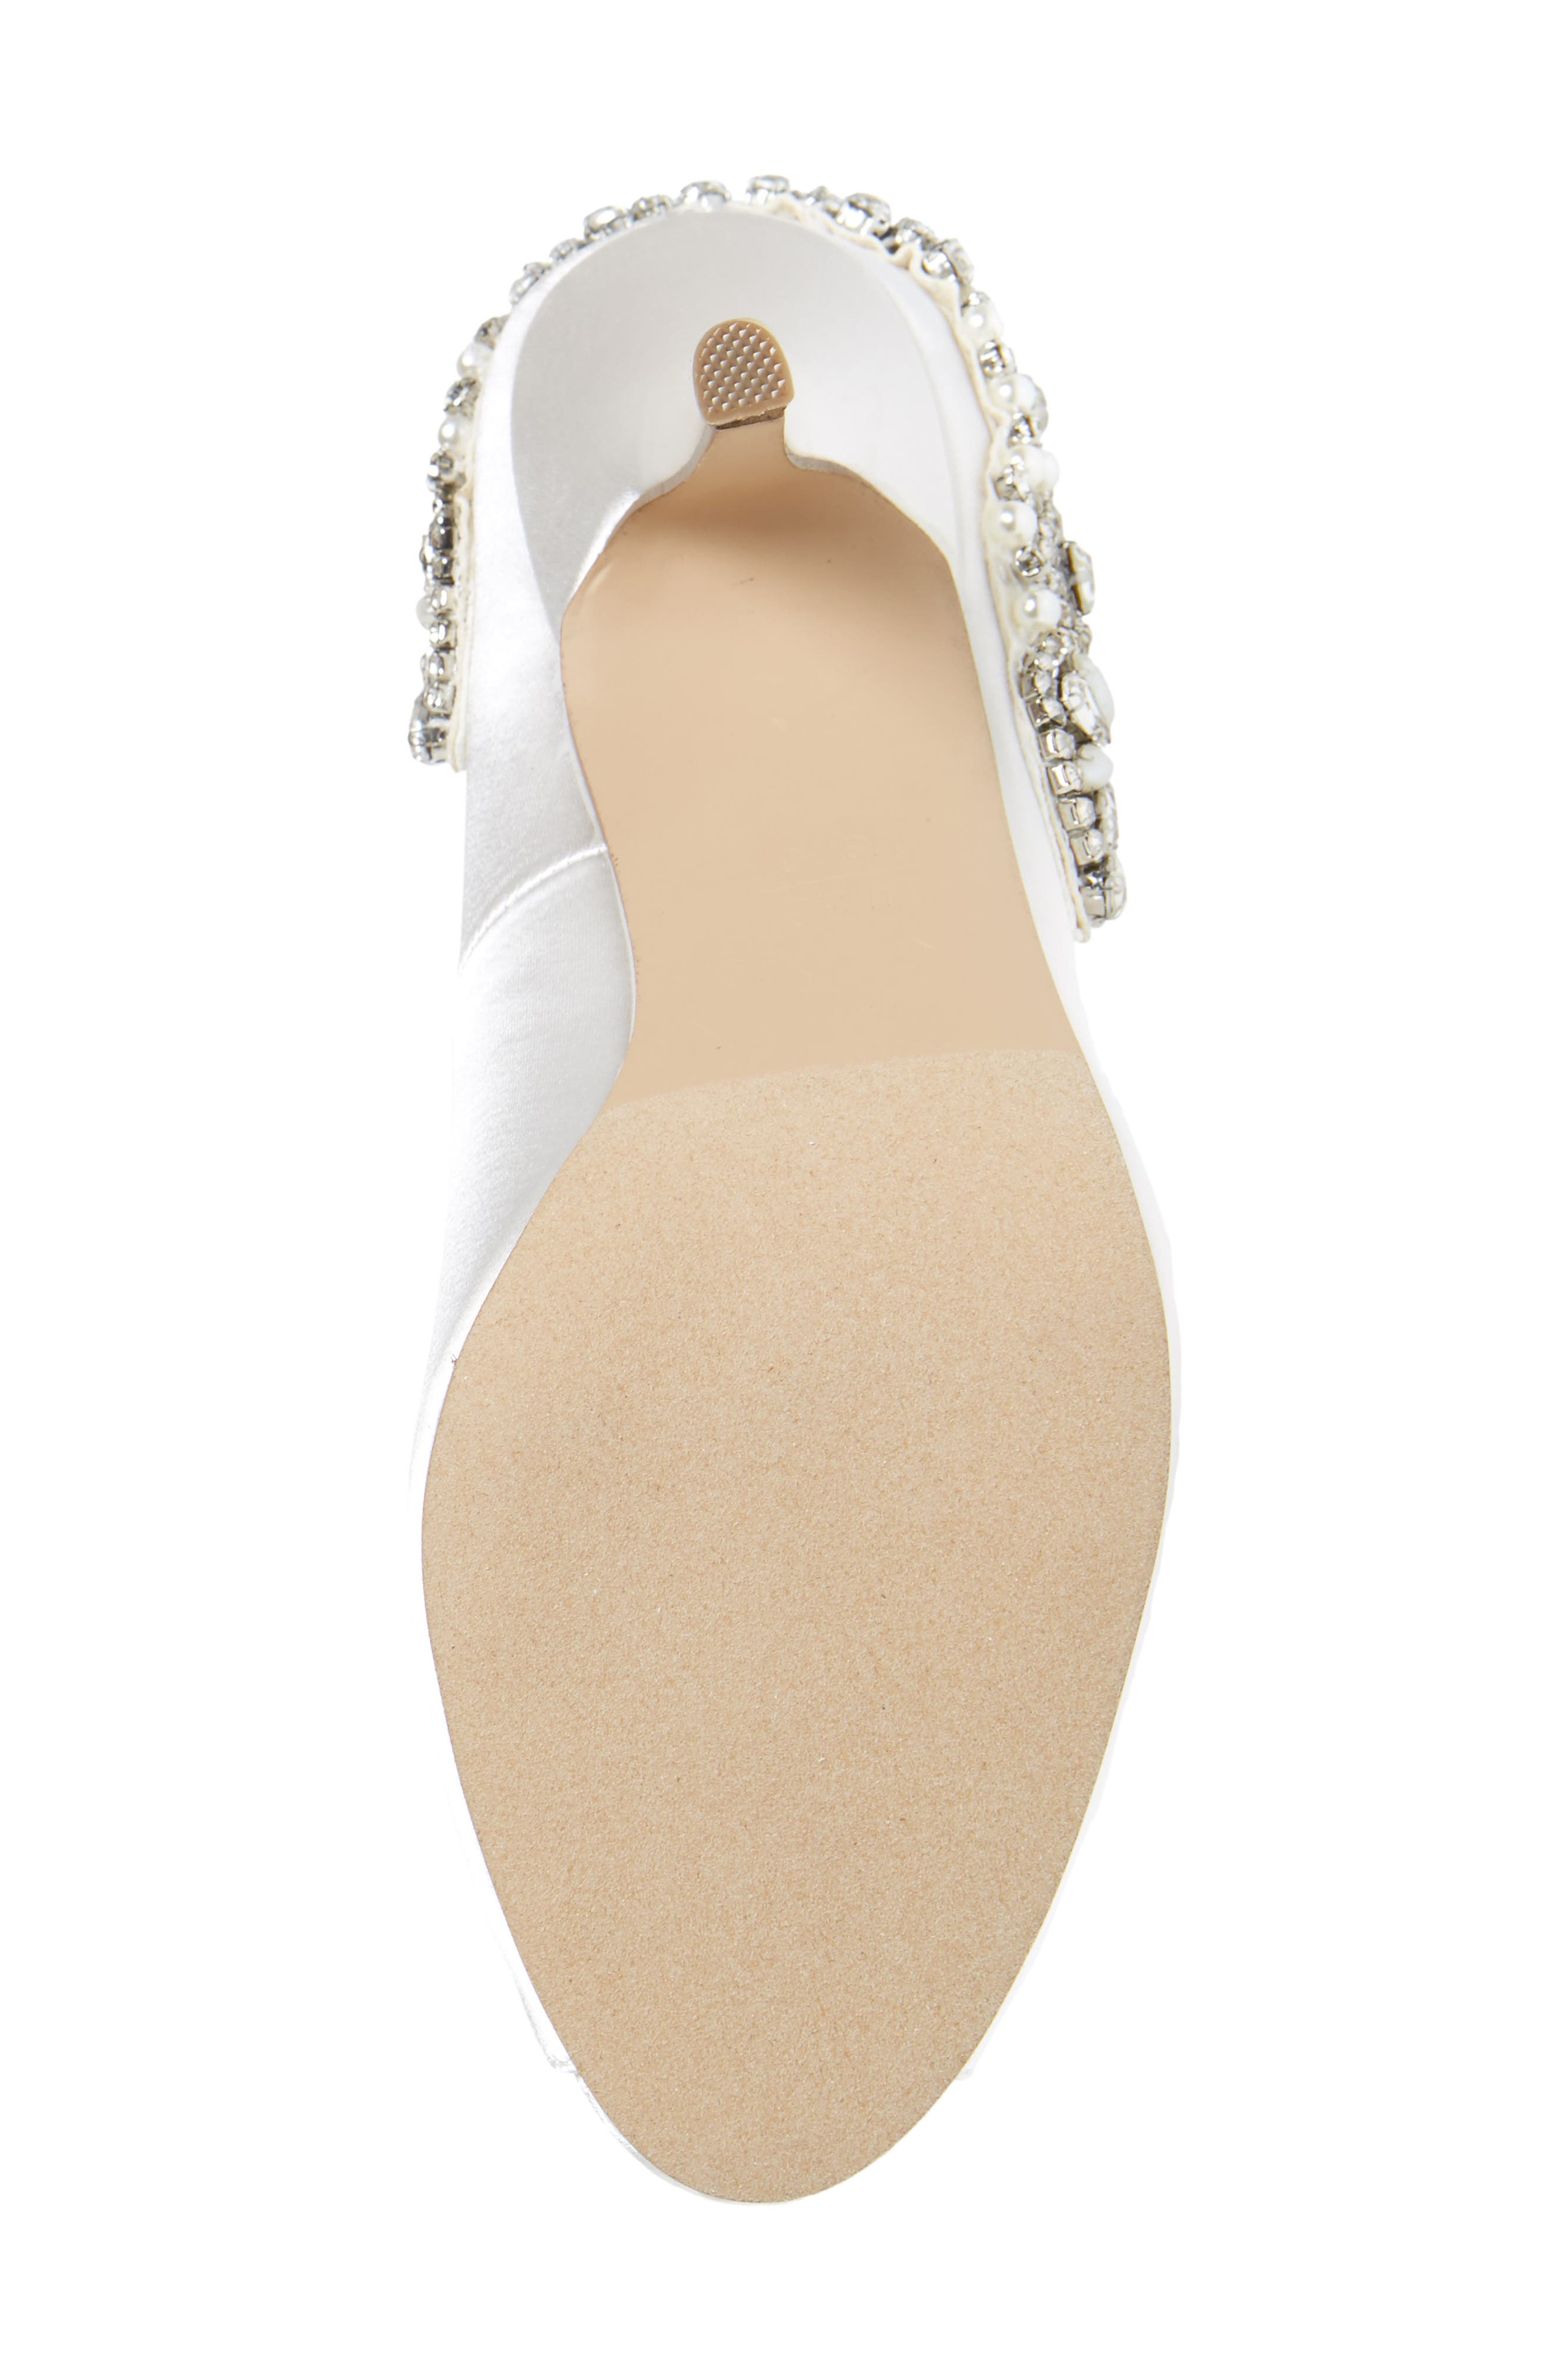 Cynthia Embellished Pump,                             Alternate thumbnail 6, color,                             IVORY SATIN